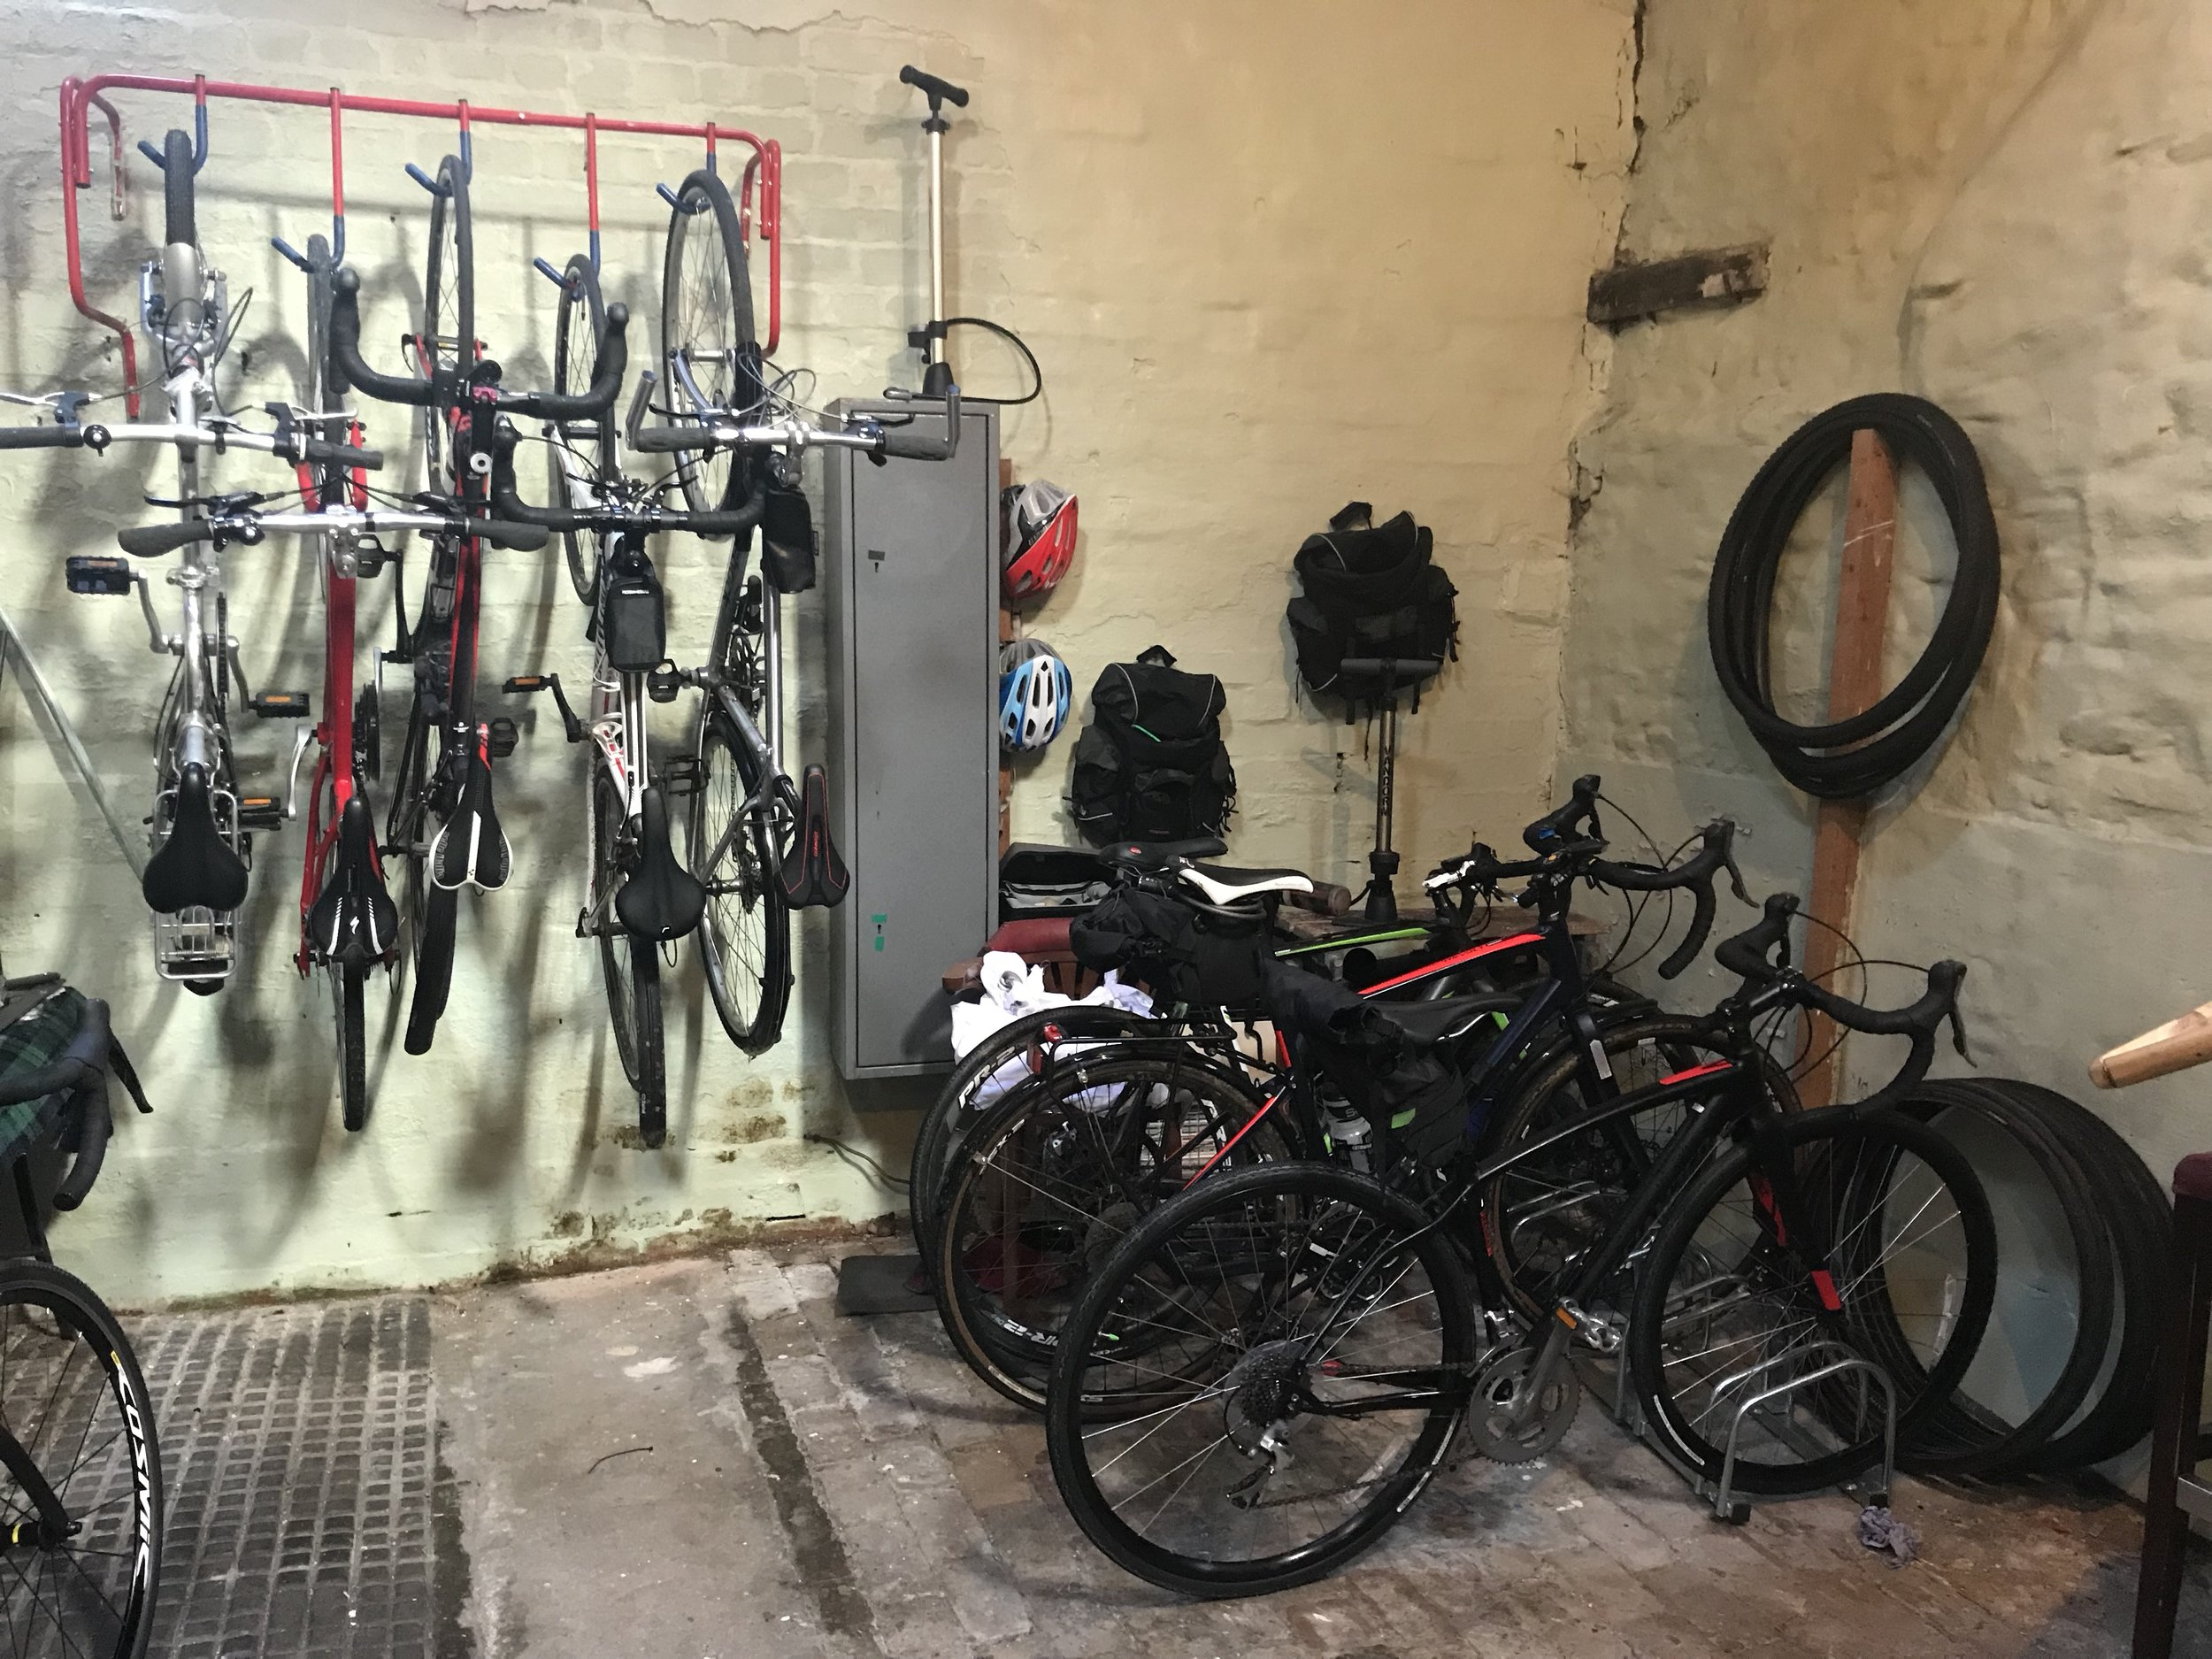 Our safe lockable bike store - bring your own or hire gravel bikes, e bikes or top end road bikes from £30 a day - we're a bit bike bonkers !!